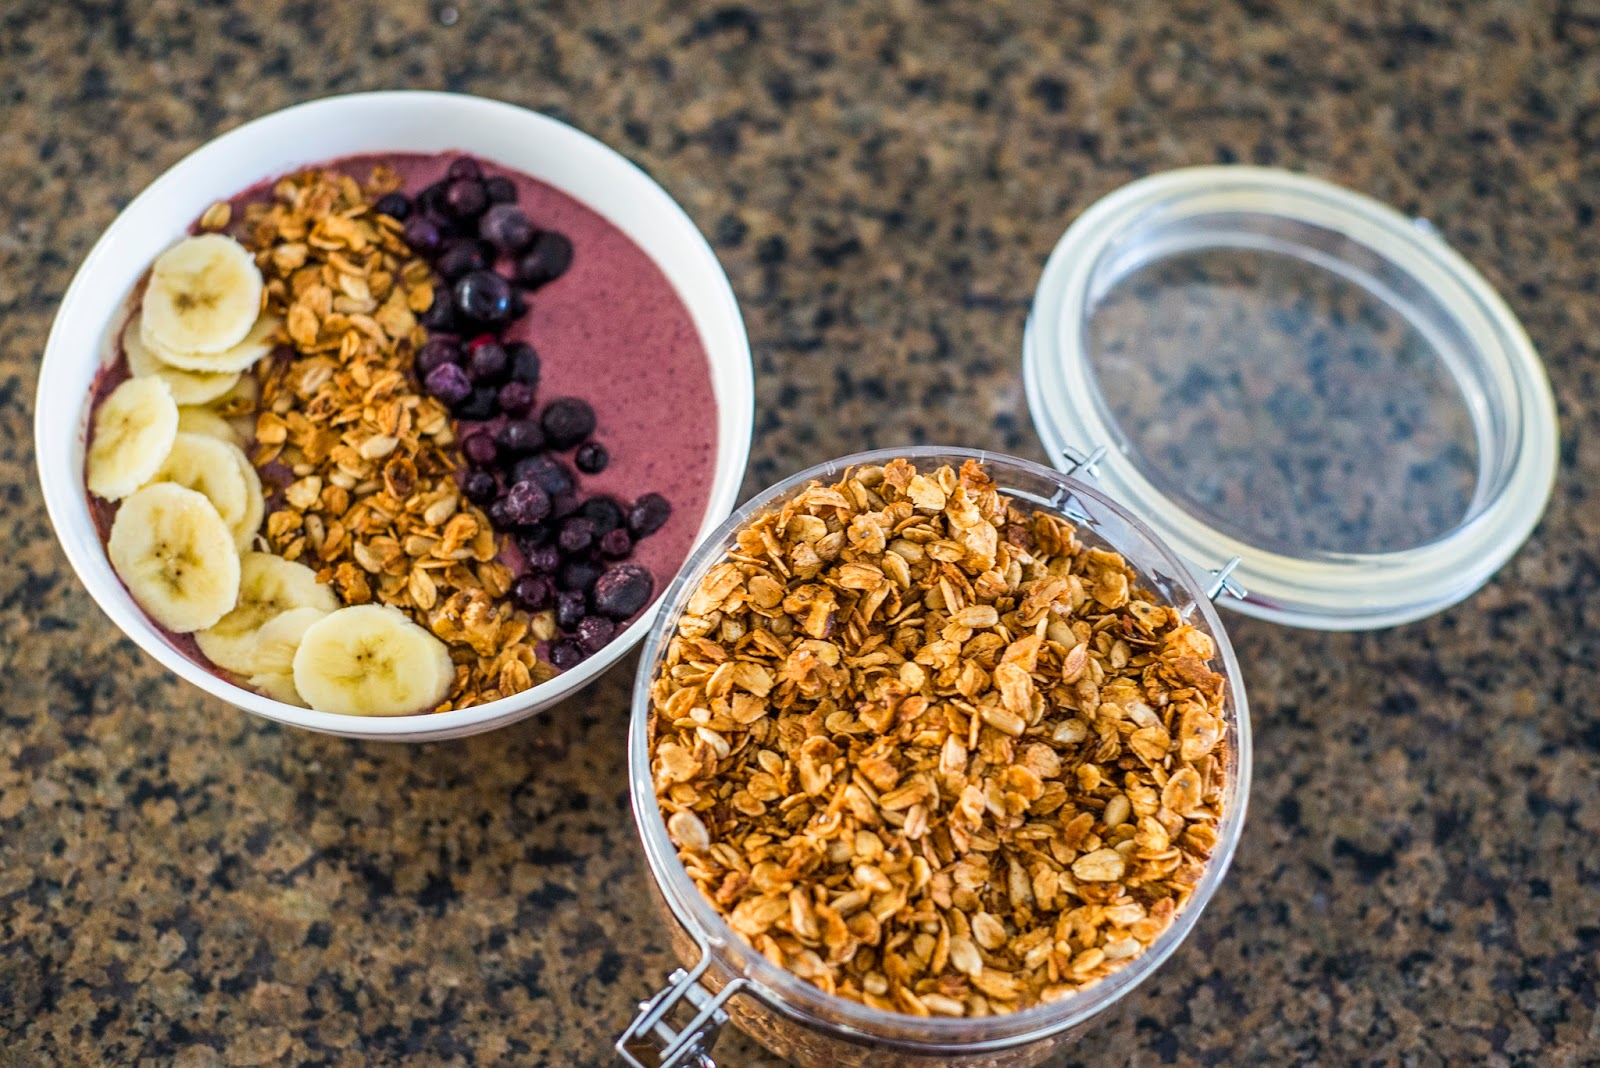 Made from scratch healthy Granola recipe